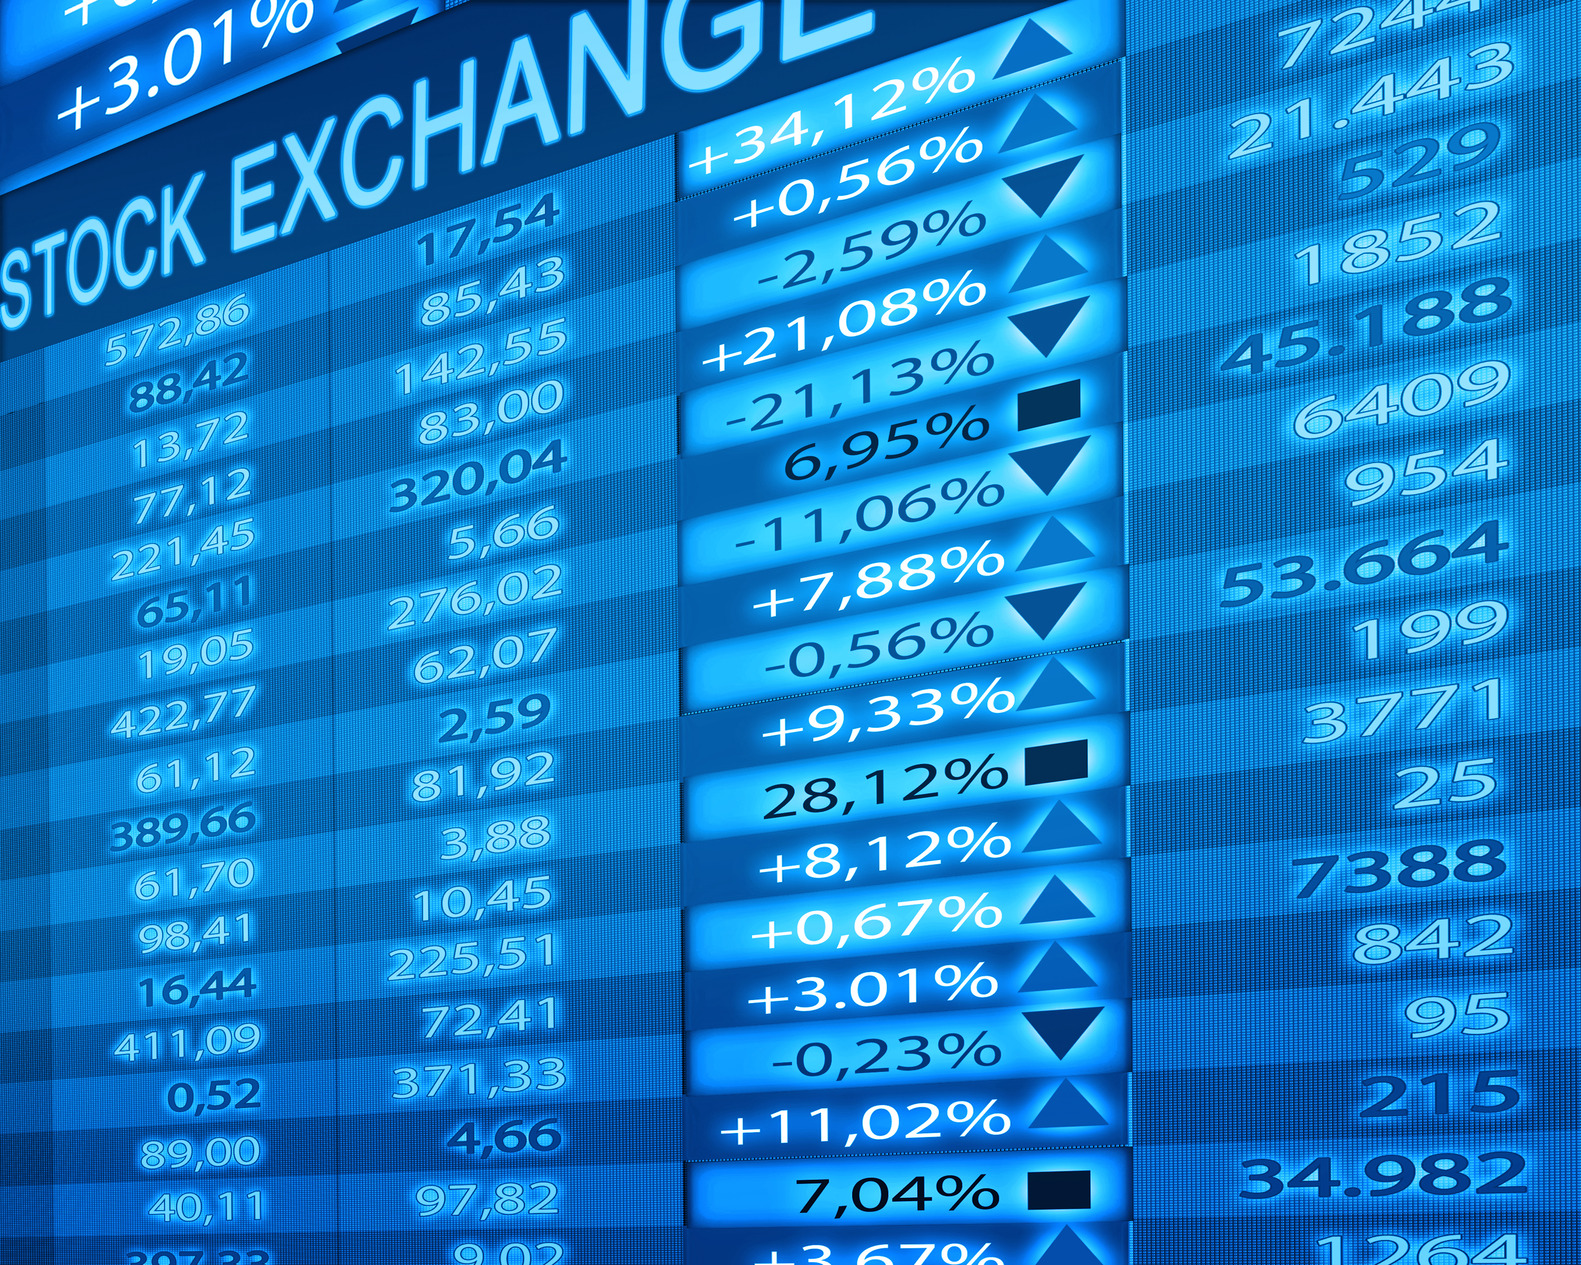 Large Stock Exchange screen